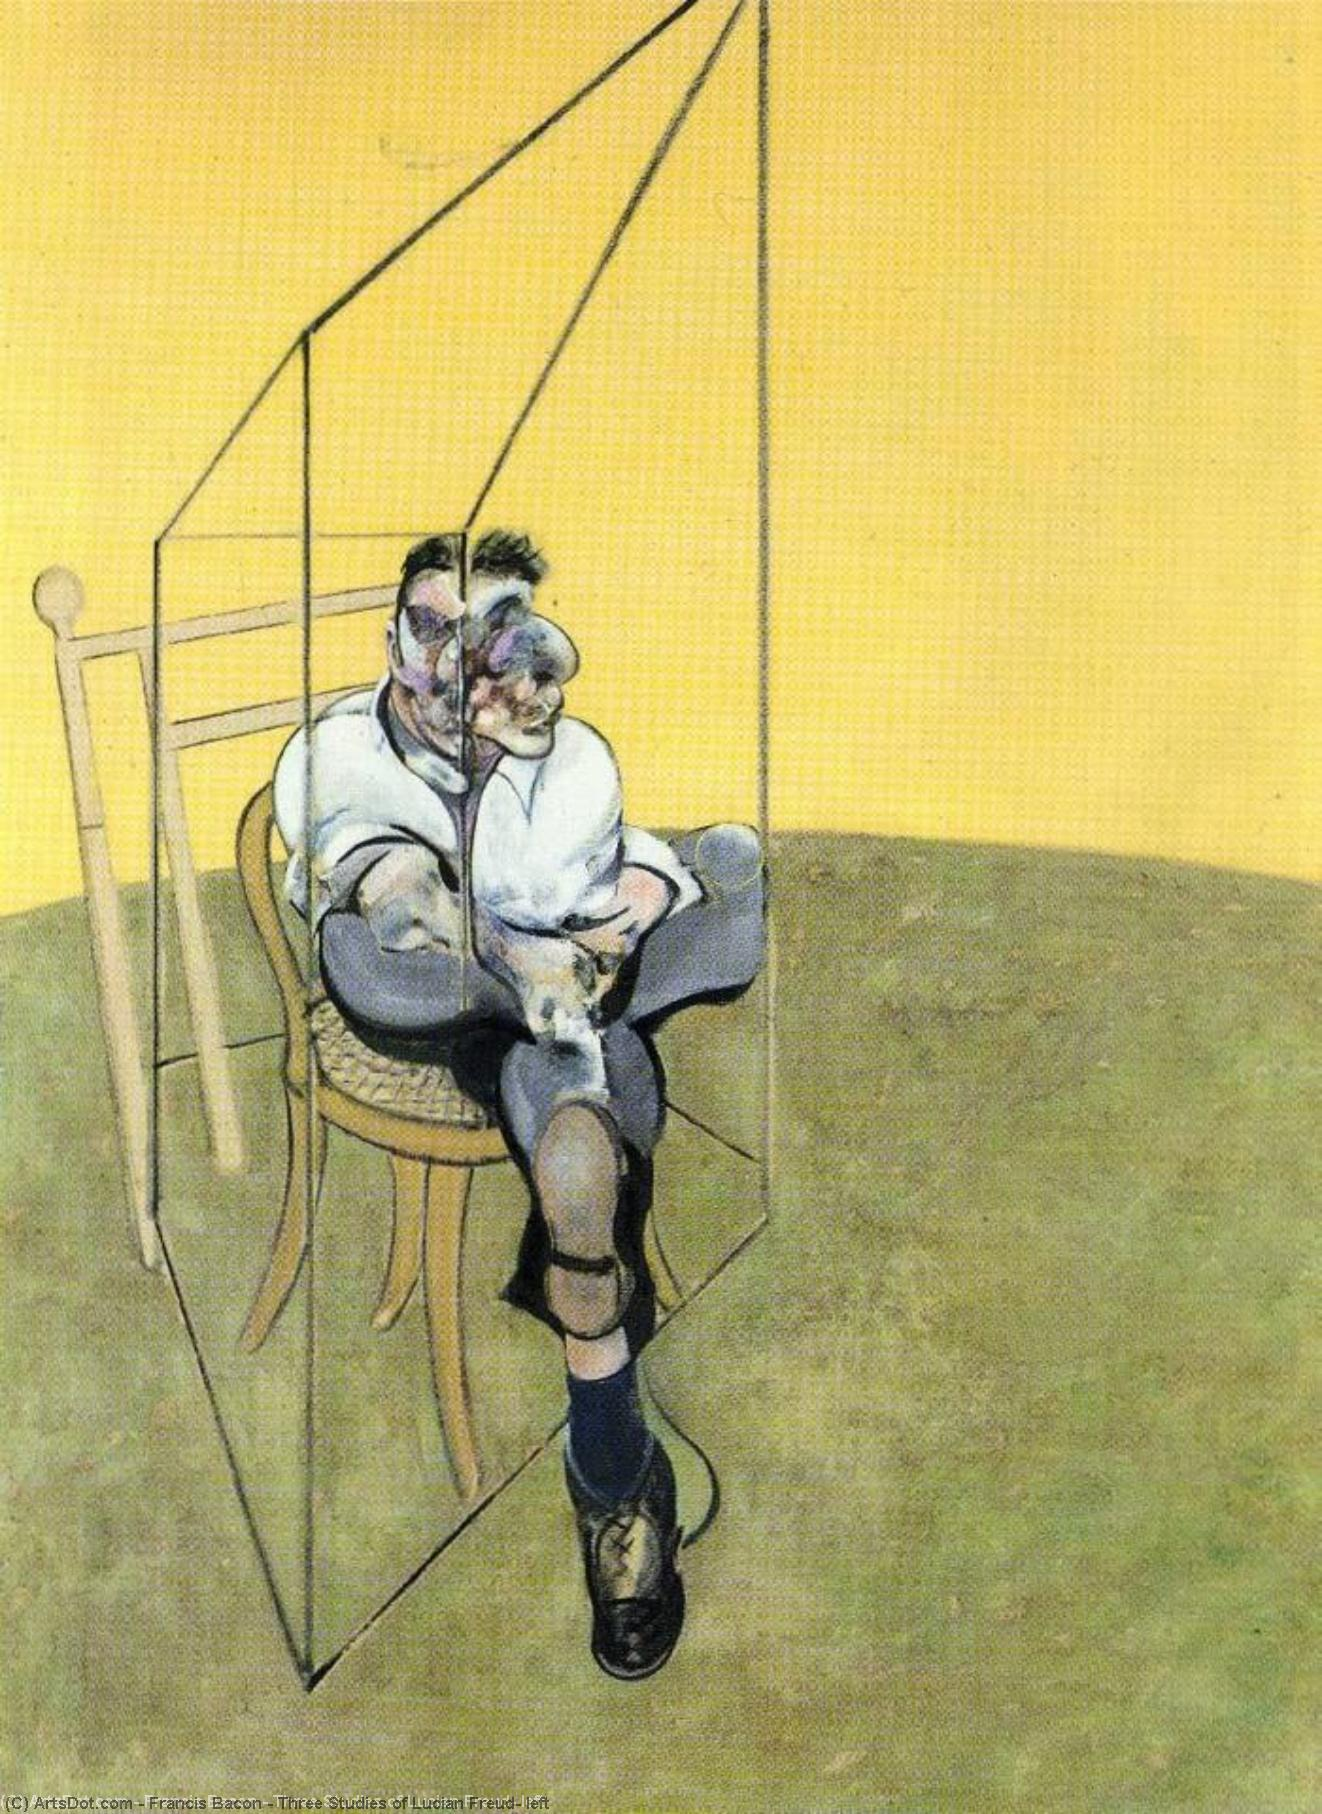 Wikioo.org - The Encyclopedia of Fine Arts - Painting, Artwork by Francis Bacon - Three Studies of Lucian Freud, left